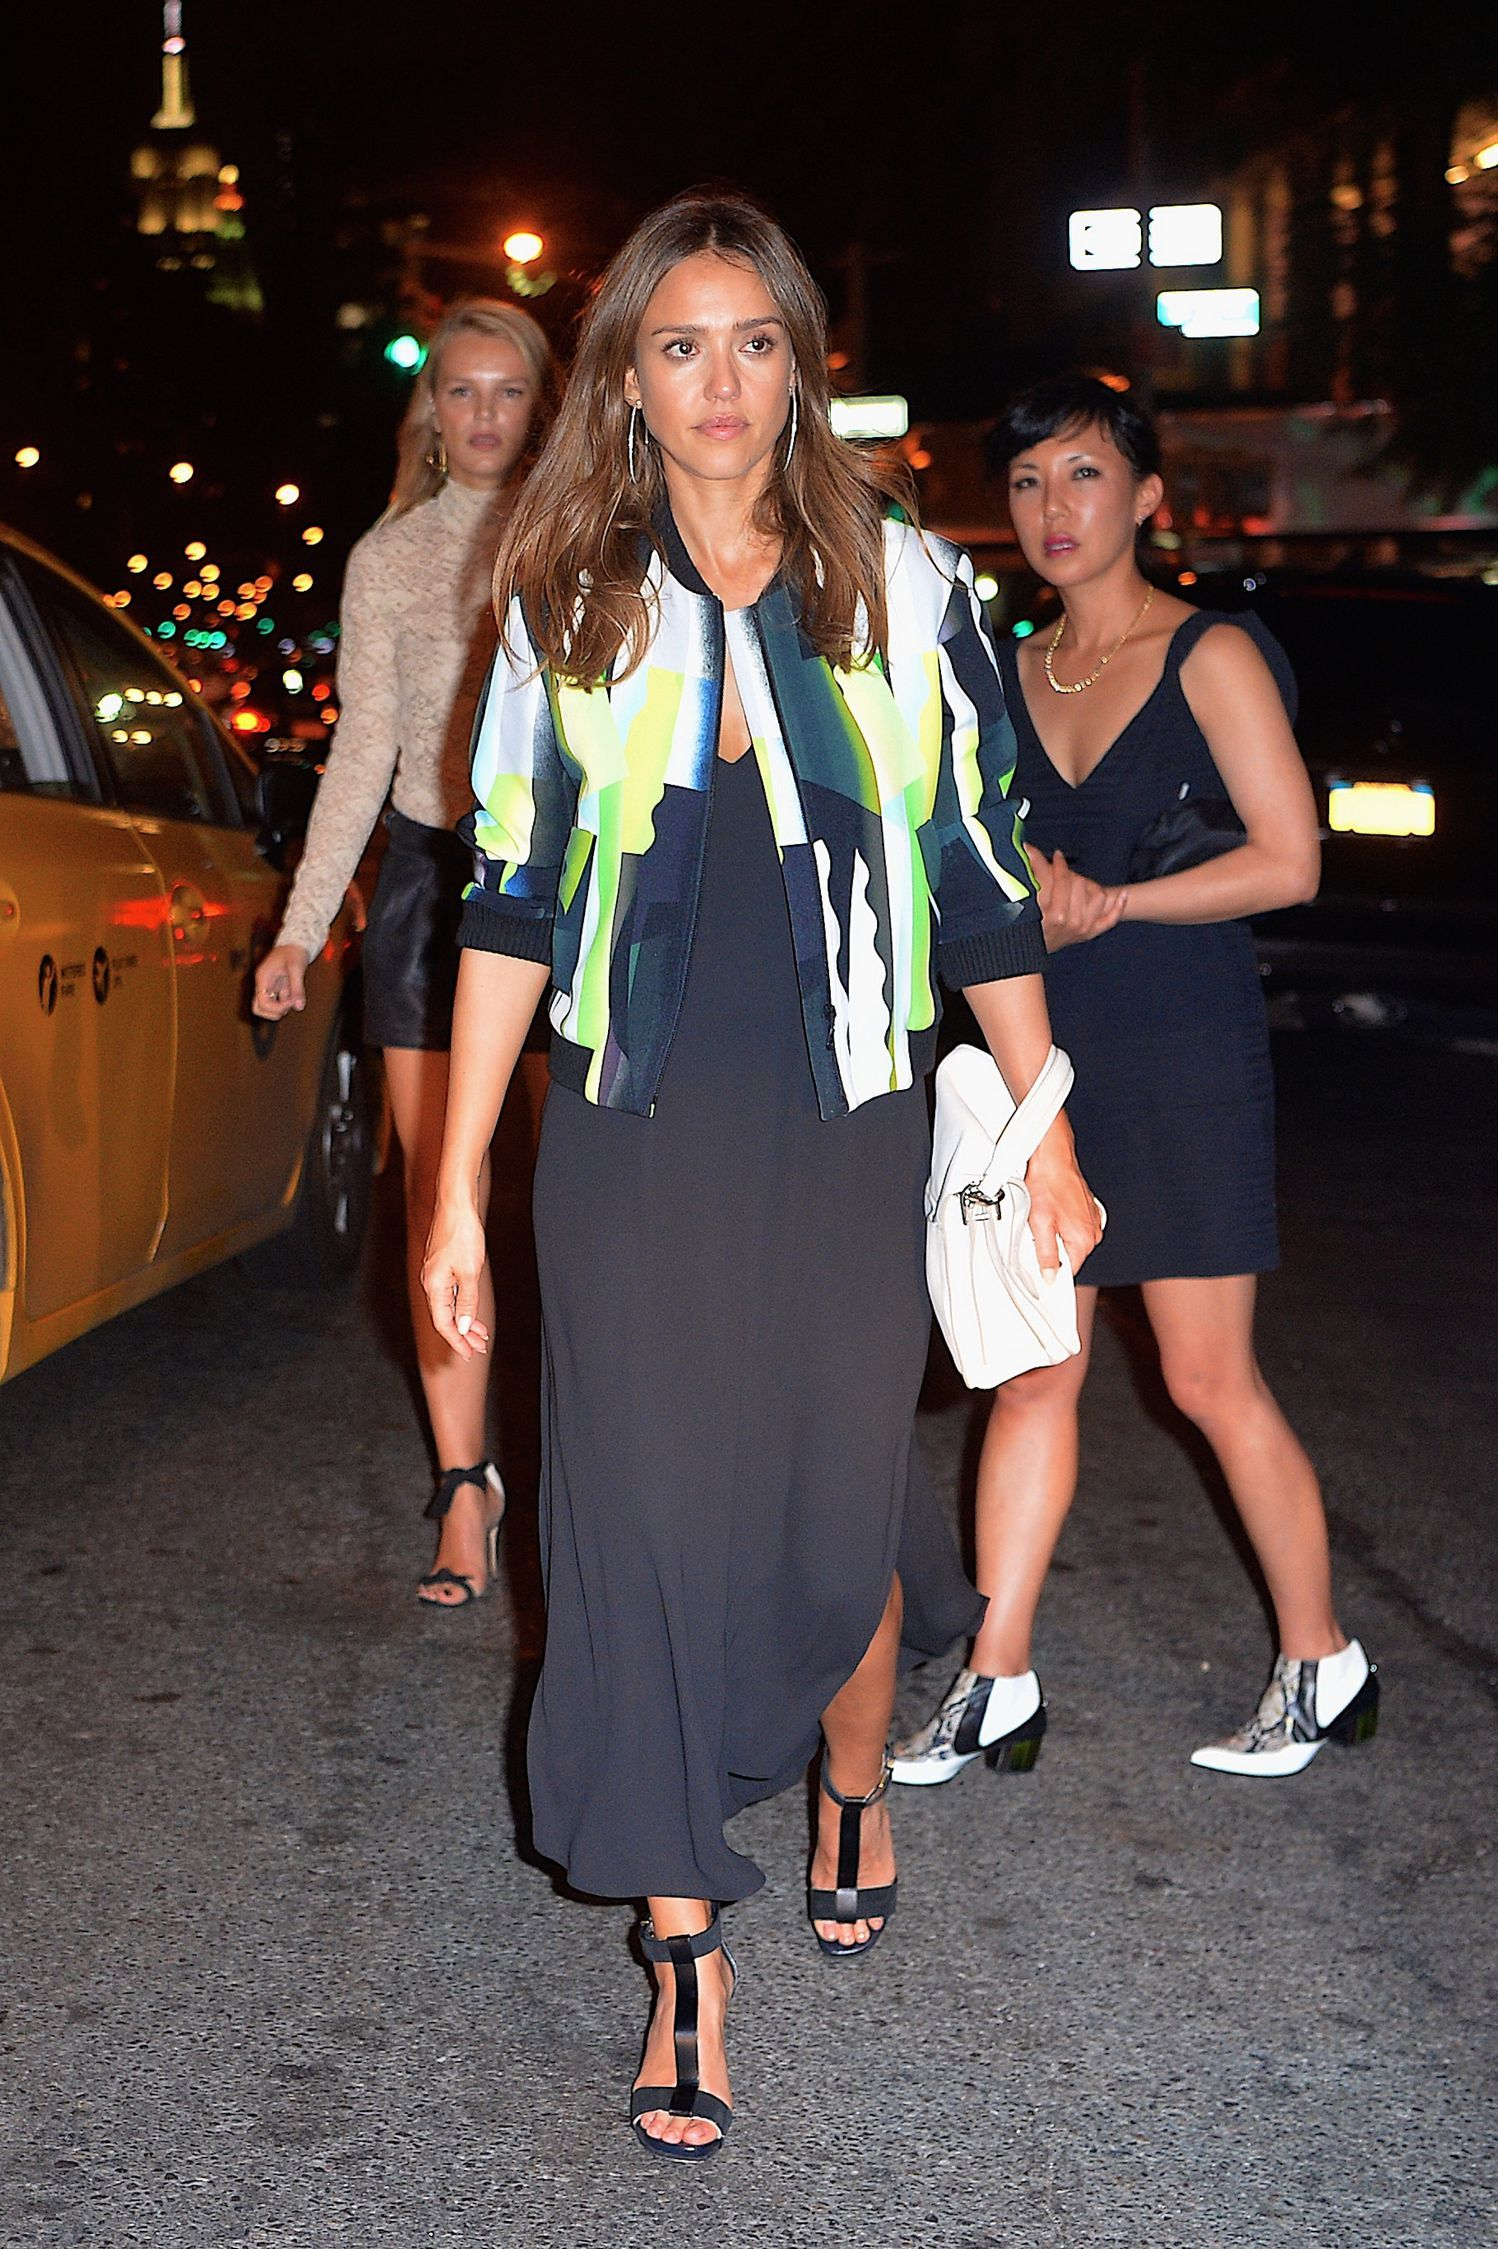 Jessica Alba out in NYC 9/12/16